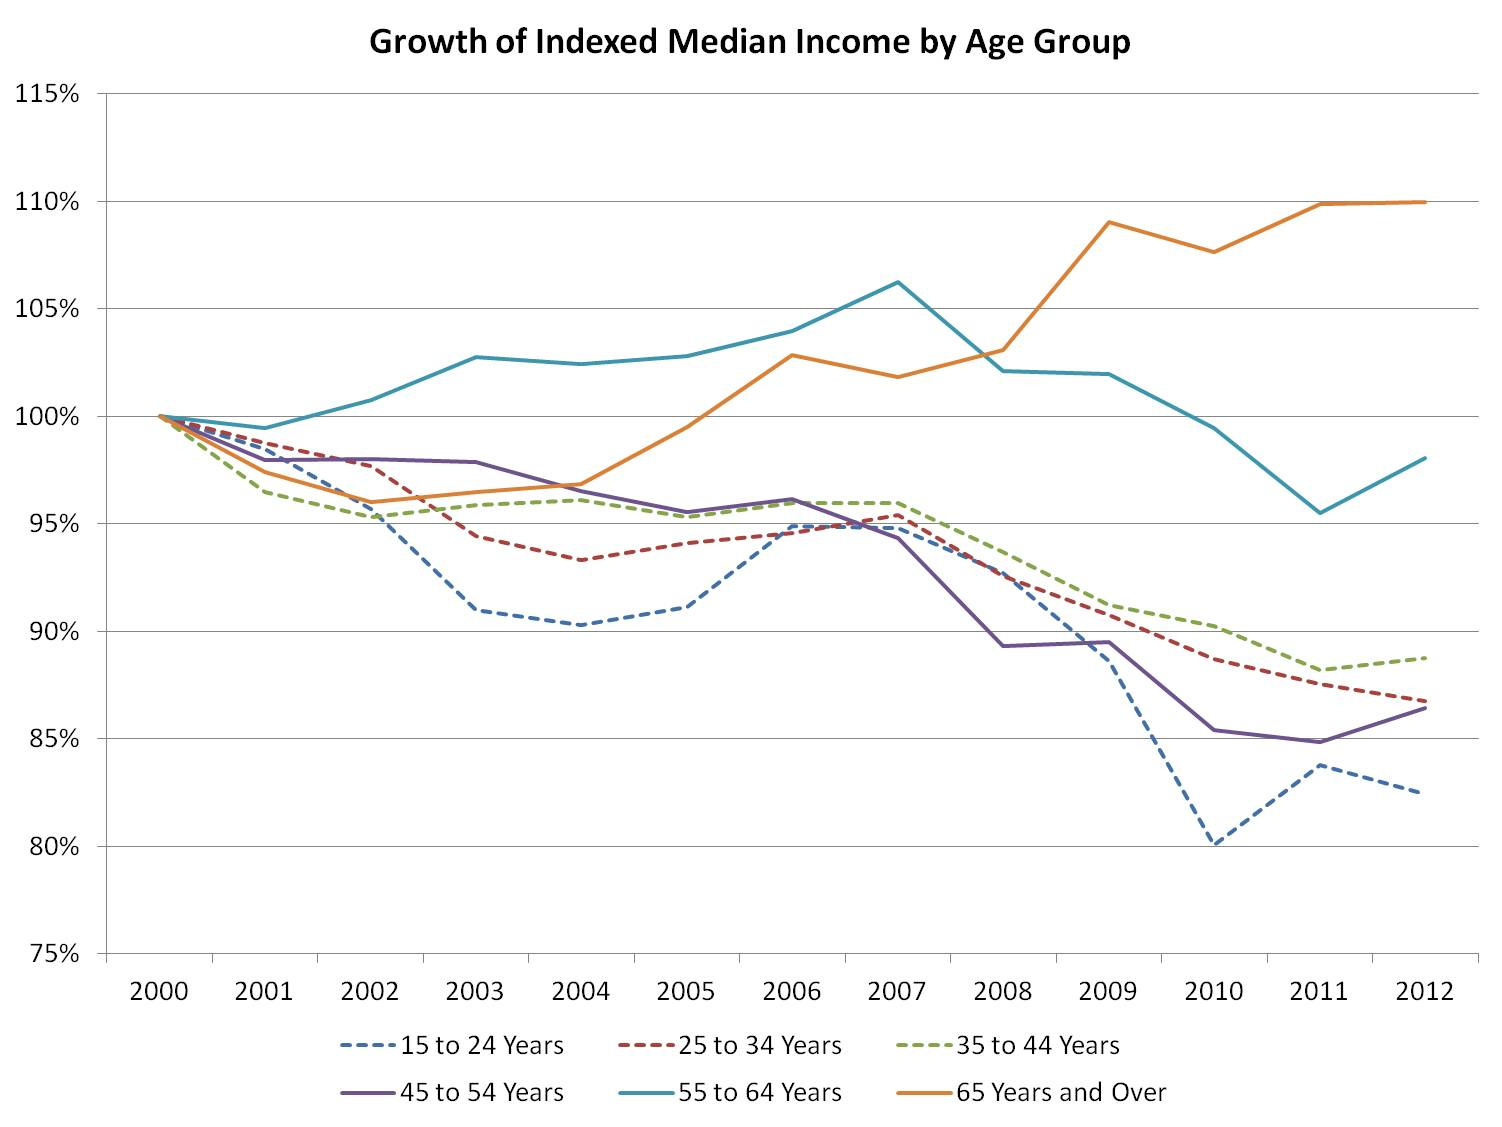 Index Income by Age